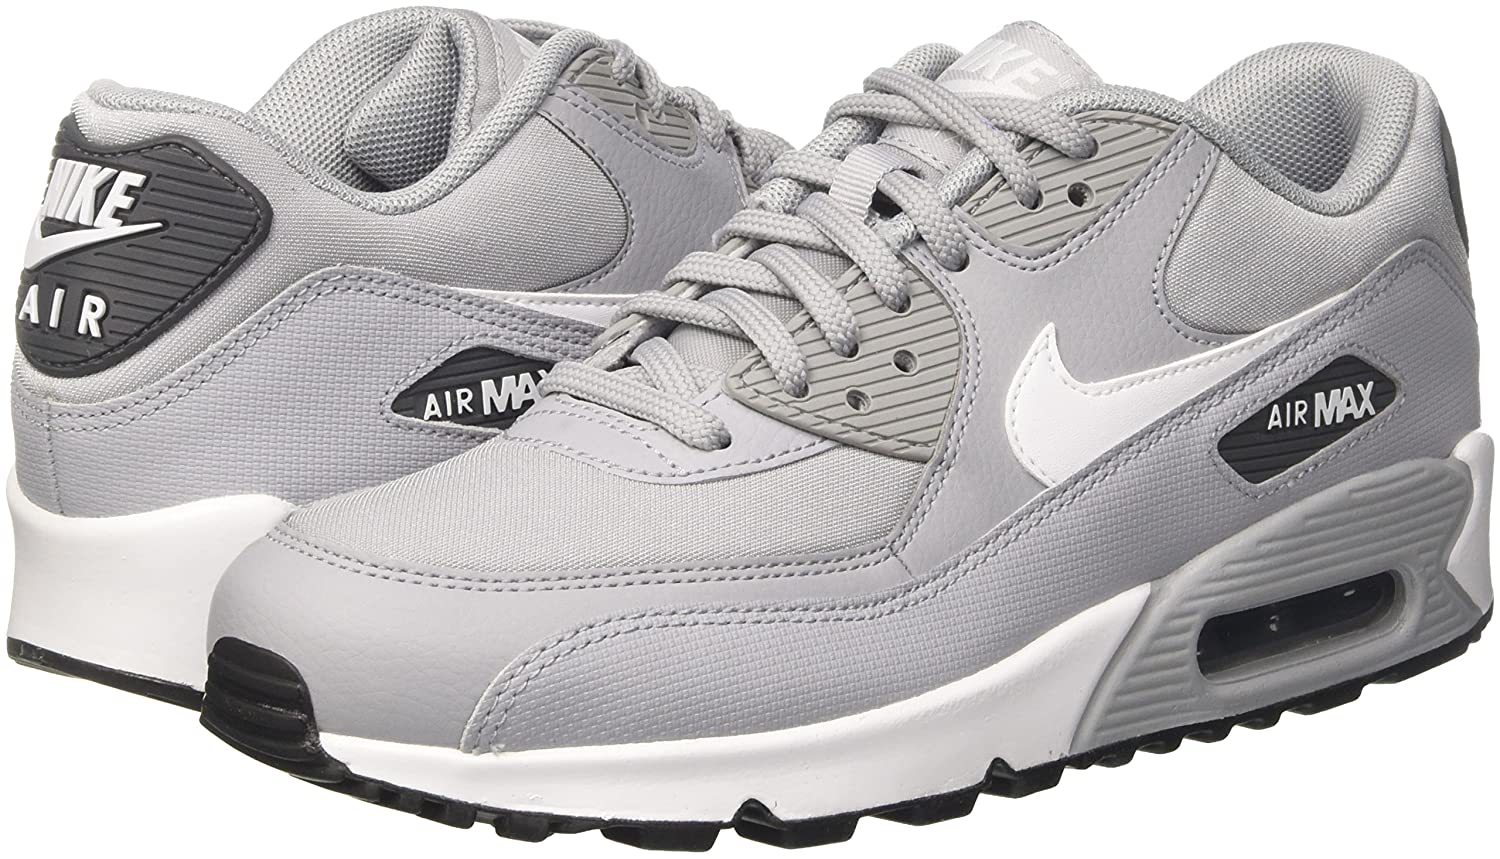 NIKE Women's Air Max 90 Running Shoe B078SGQGHQ 8.5 M US|Wolf Grey/White-dark Grey